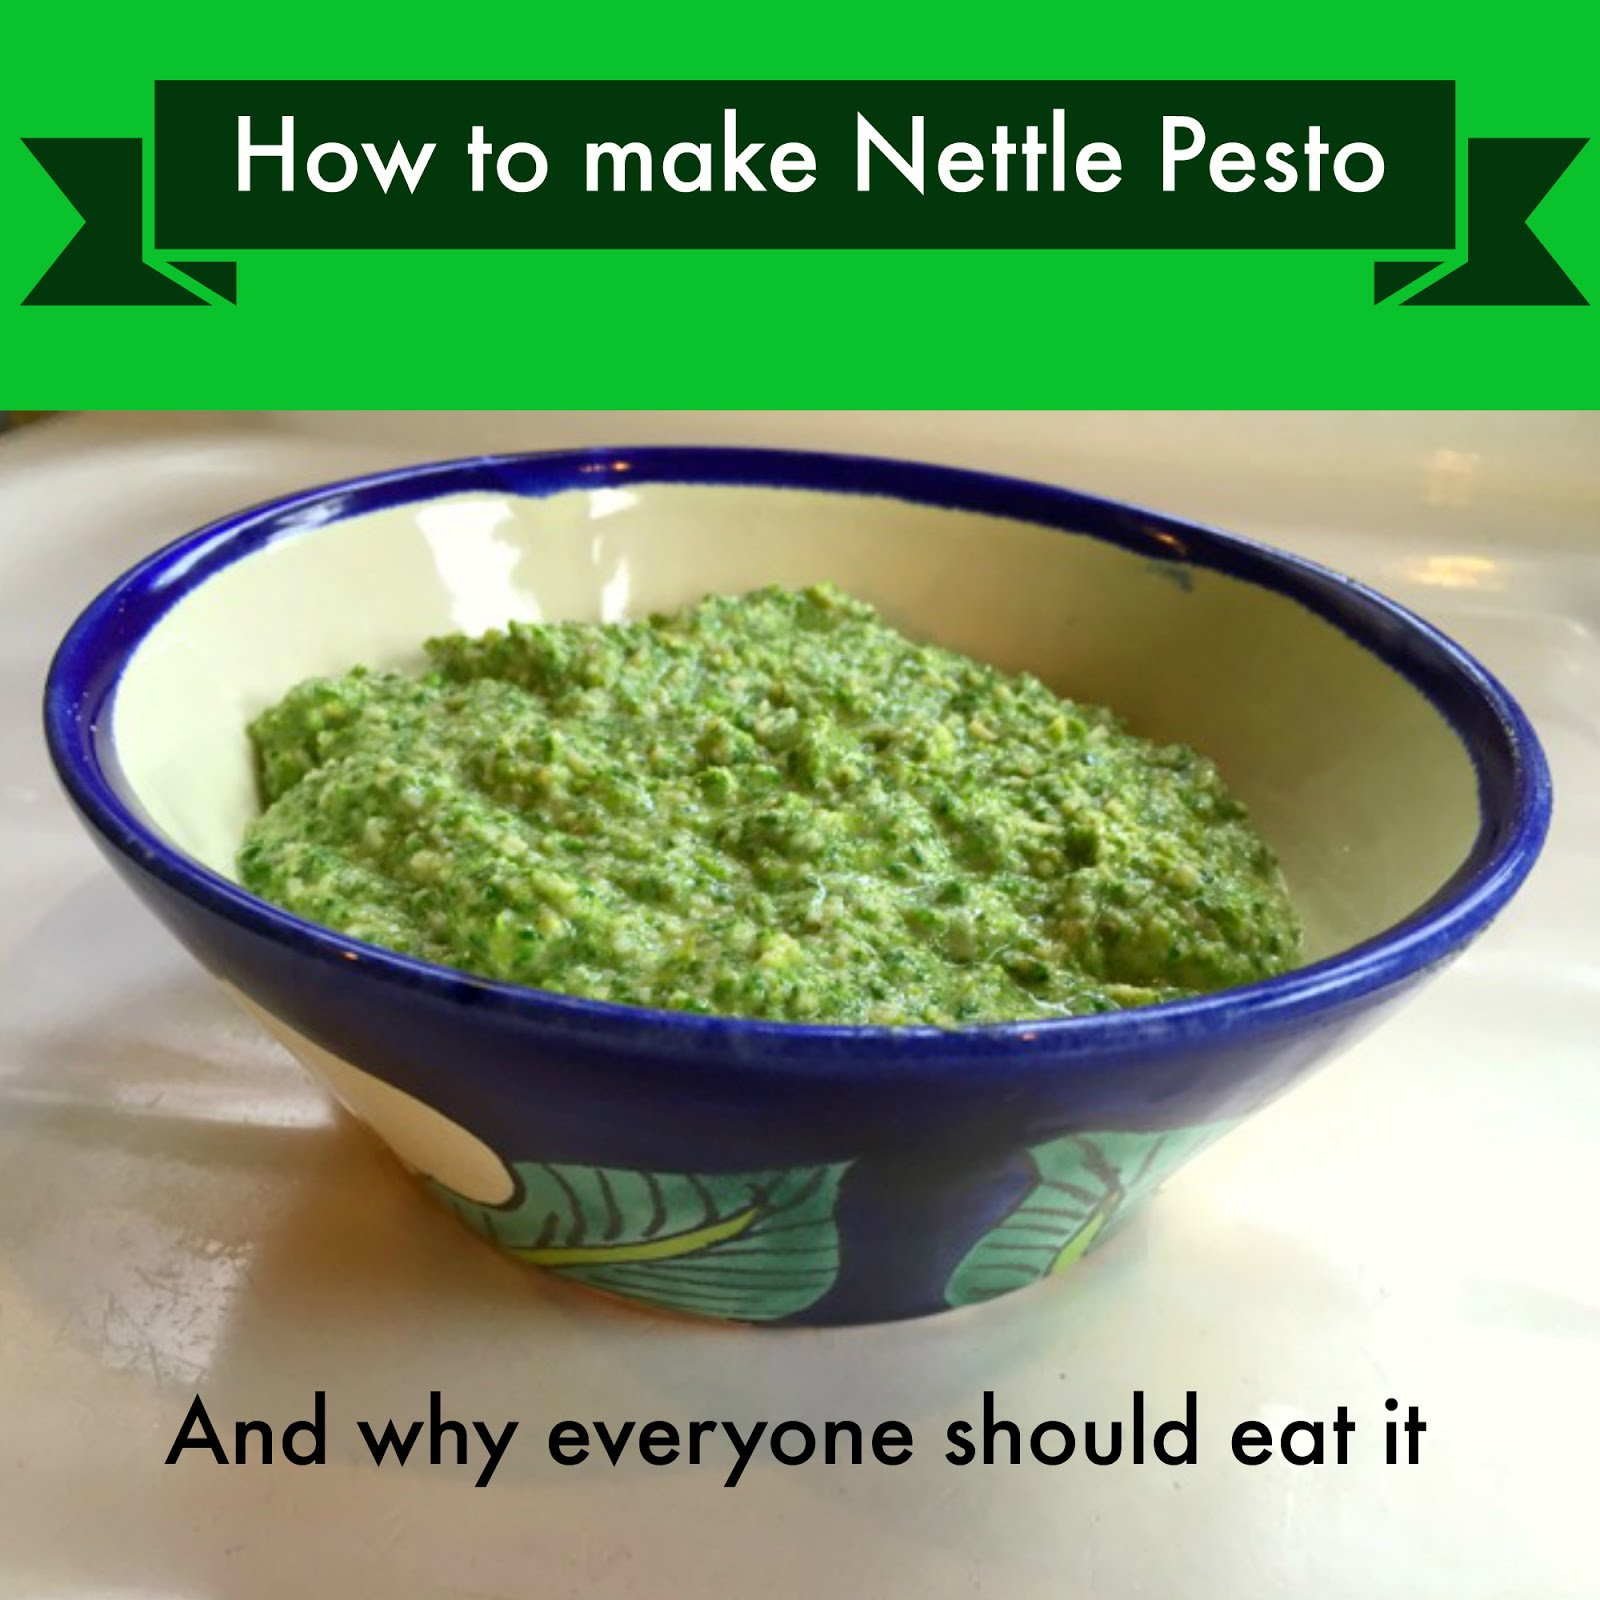 How to make nettle pesto